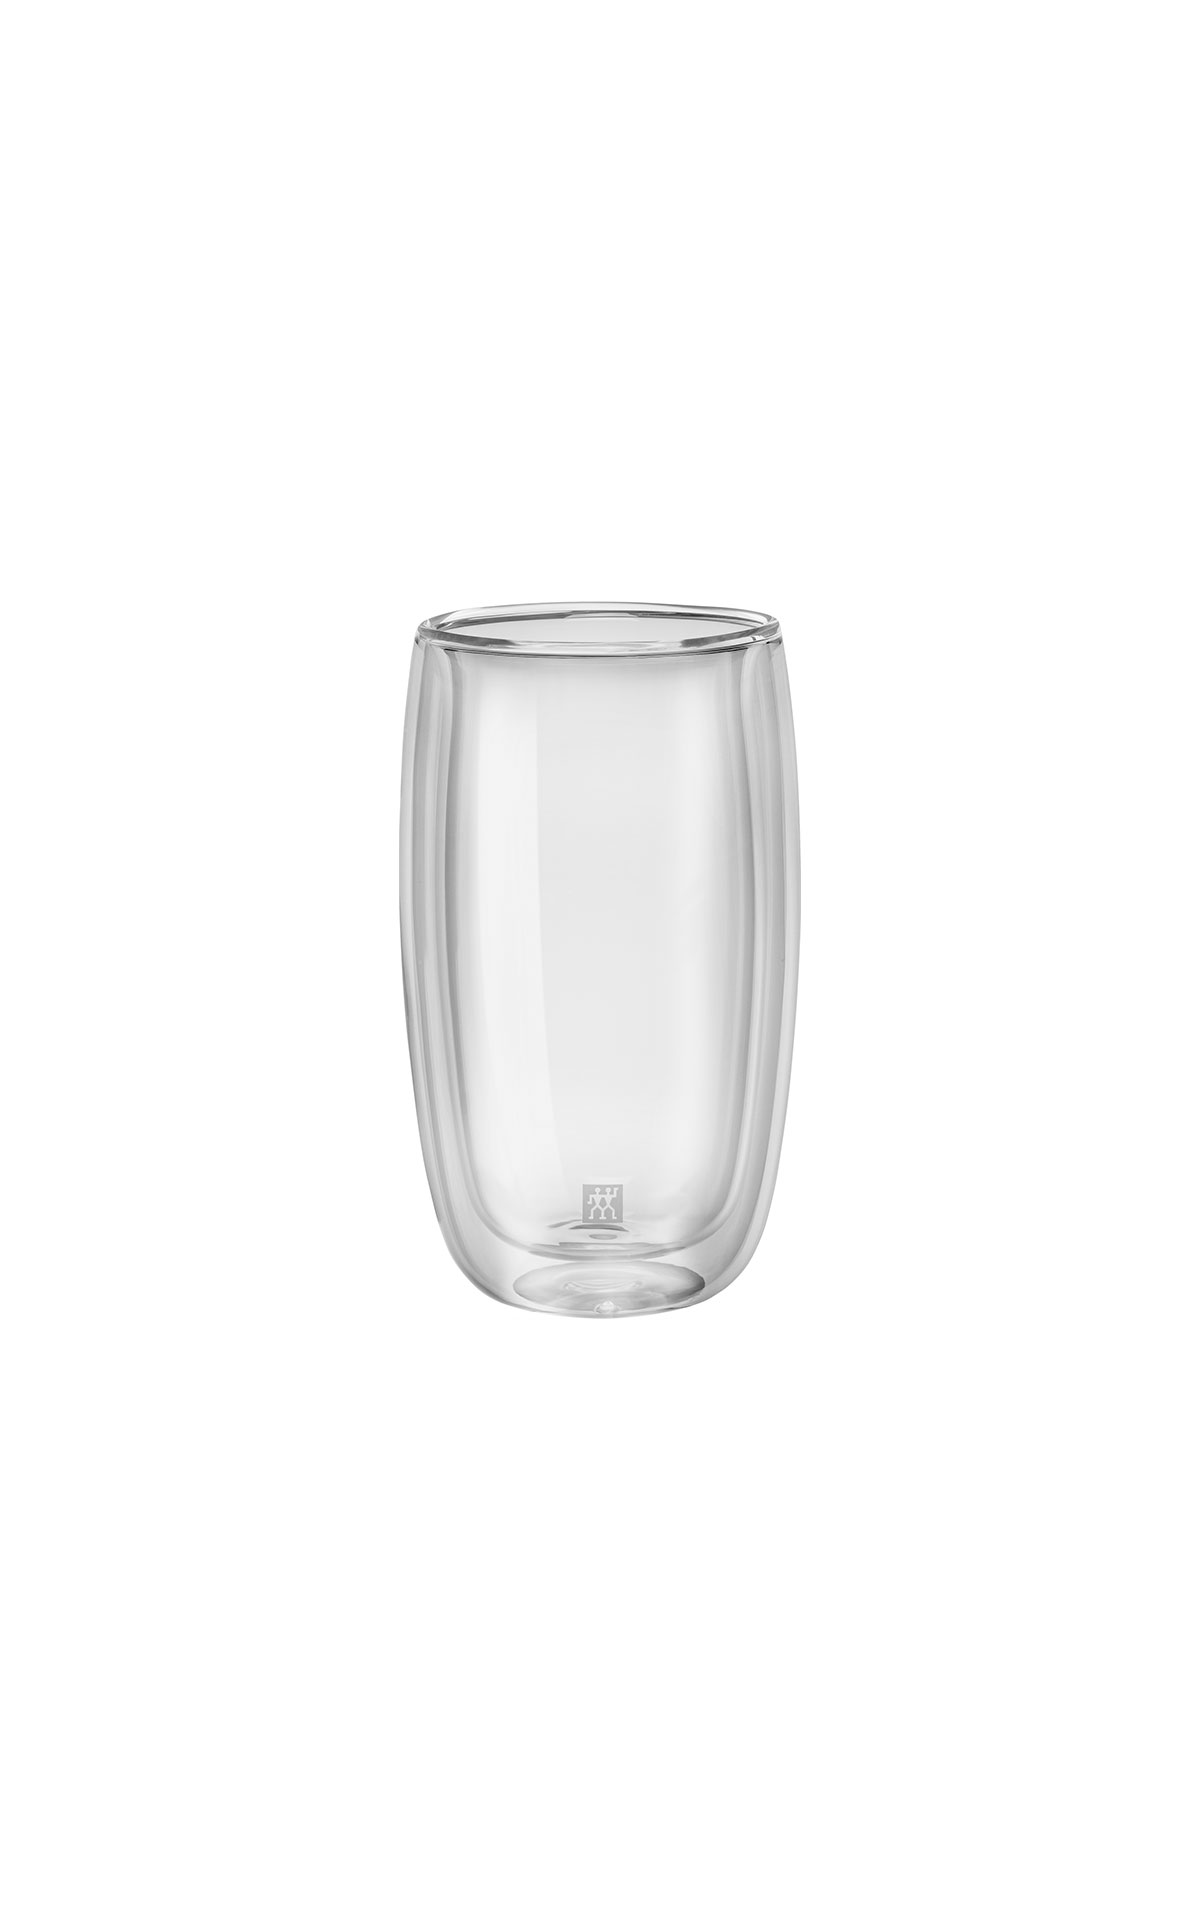 Zwilling Latte glasses from Bicester Village